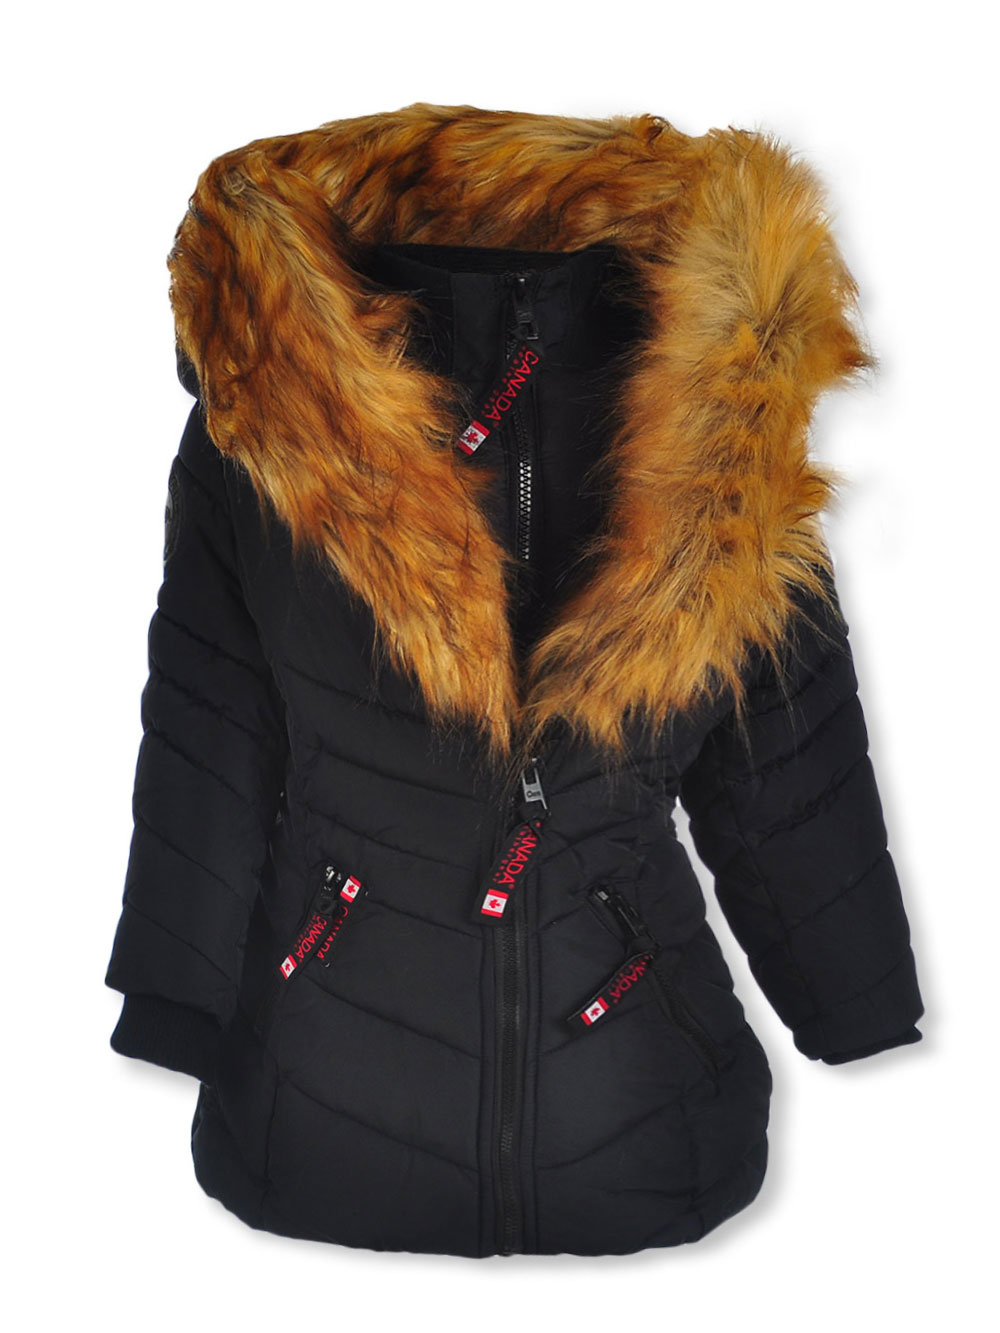 Jackets and Coats Faux Fur Collar